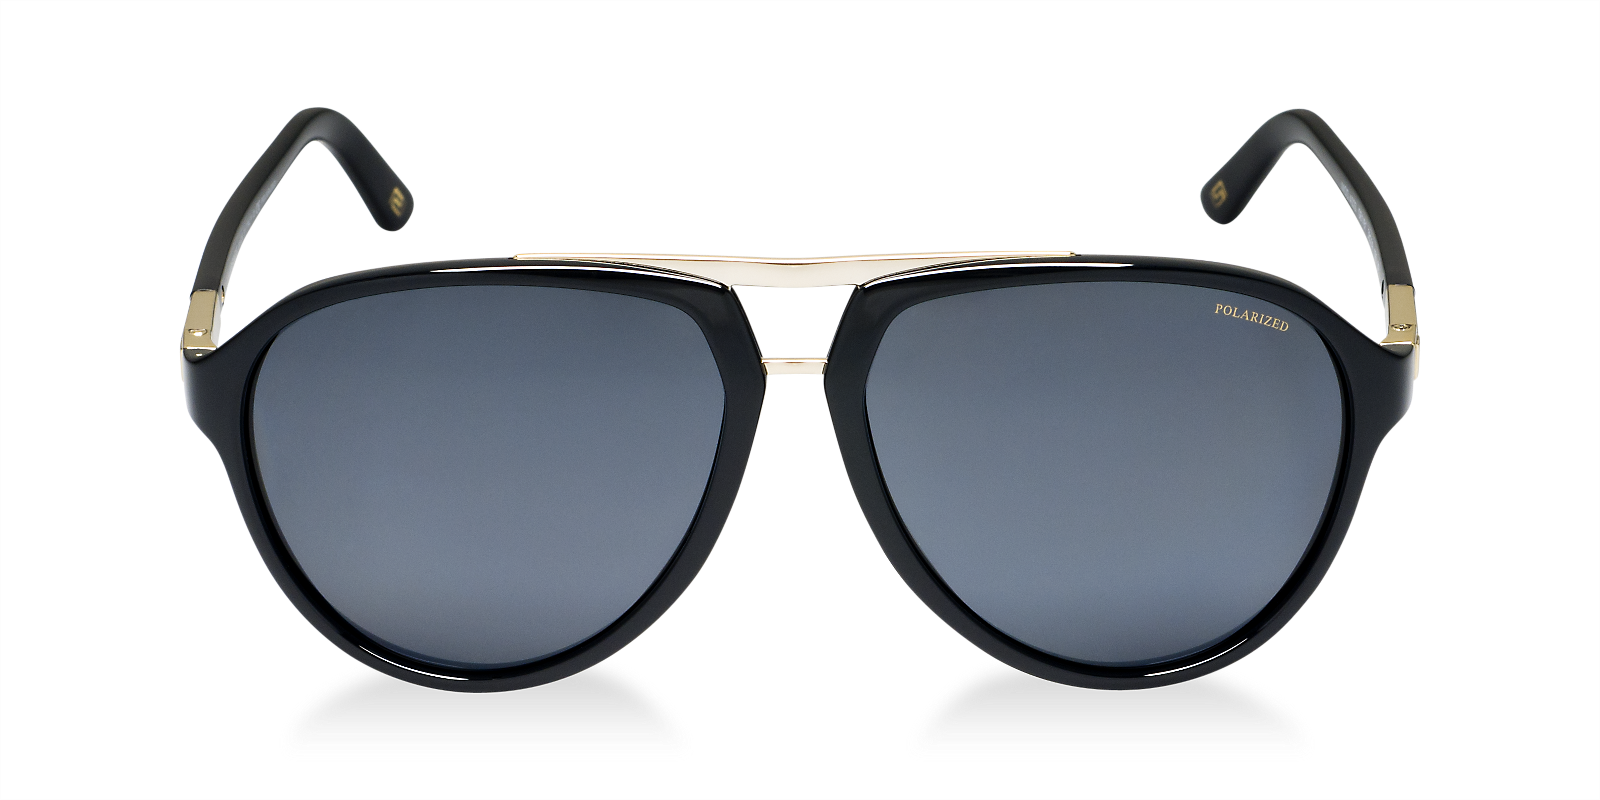 Cool Sunglass Image PNG Image